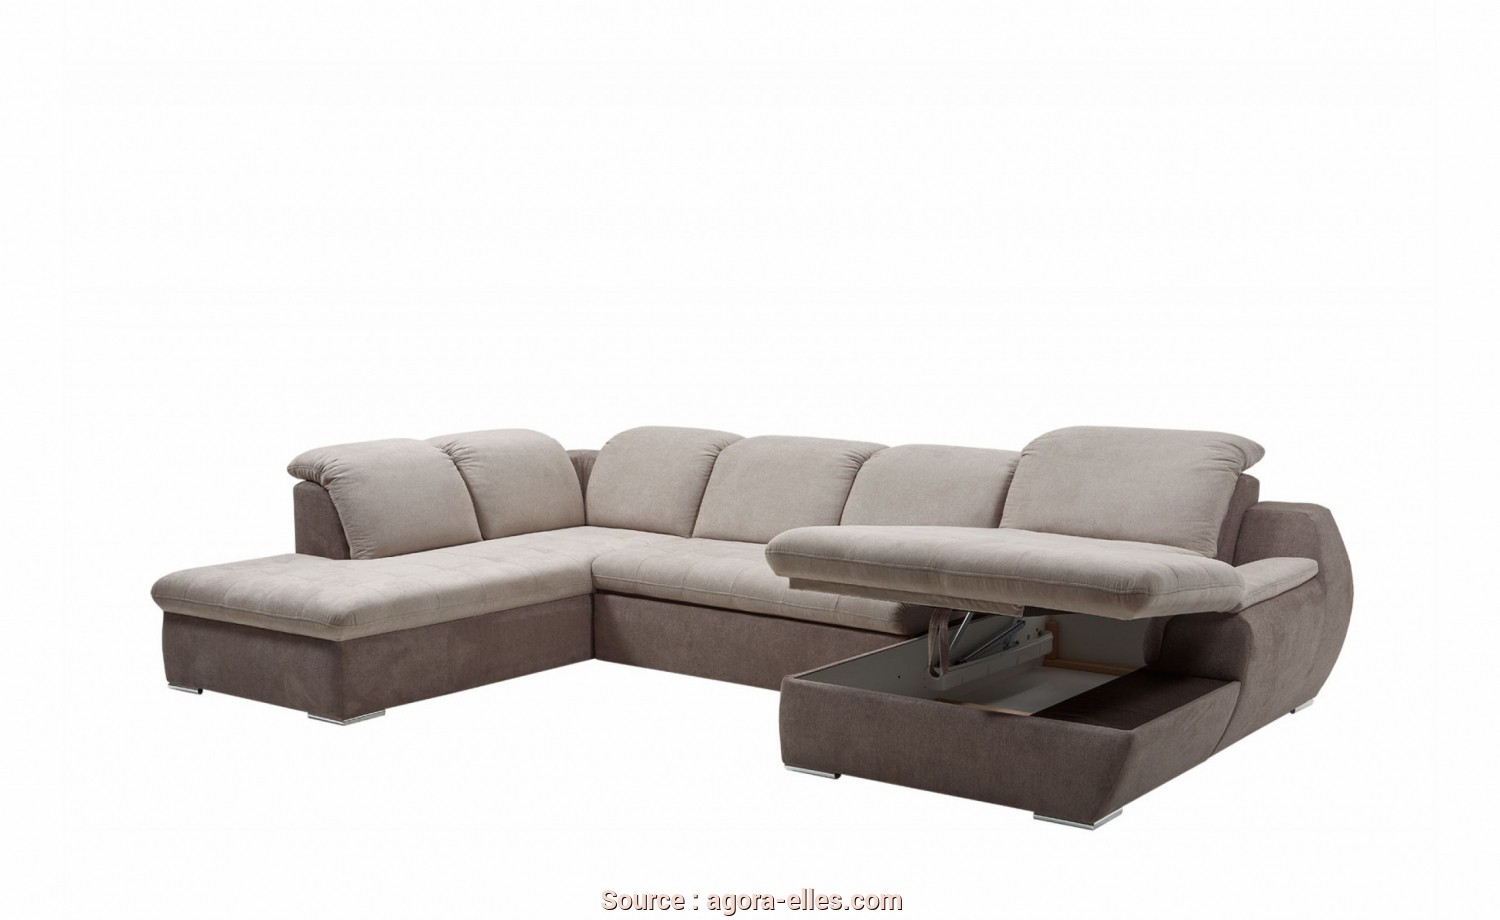 Sofa Star Conforama Eccellente 6 Divano Dallas Conforama Jake Vintage